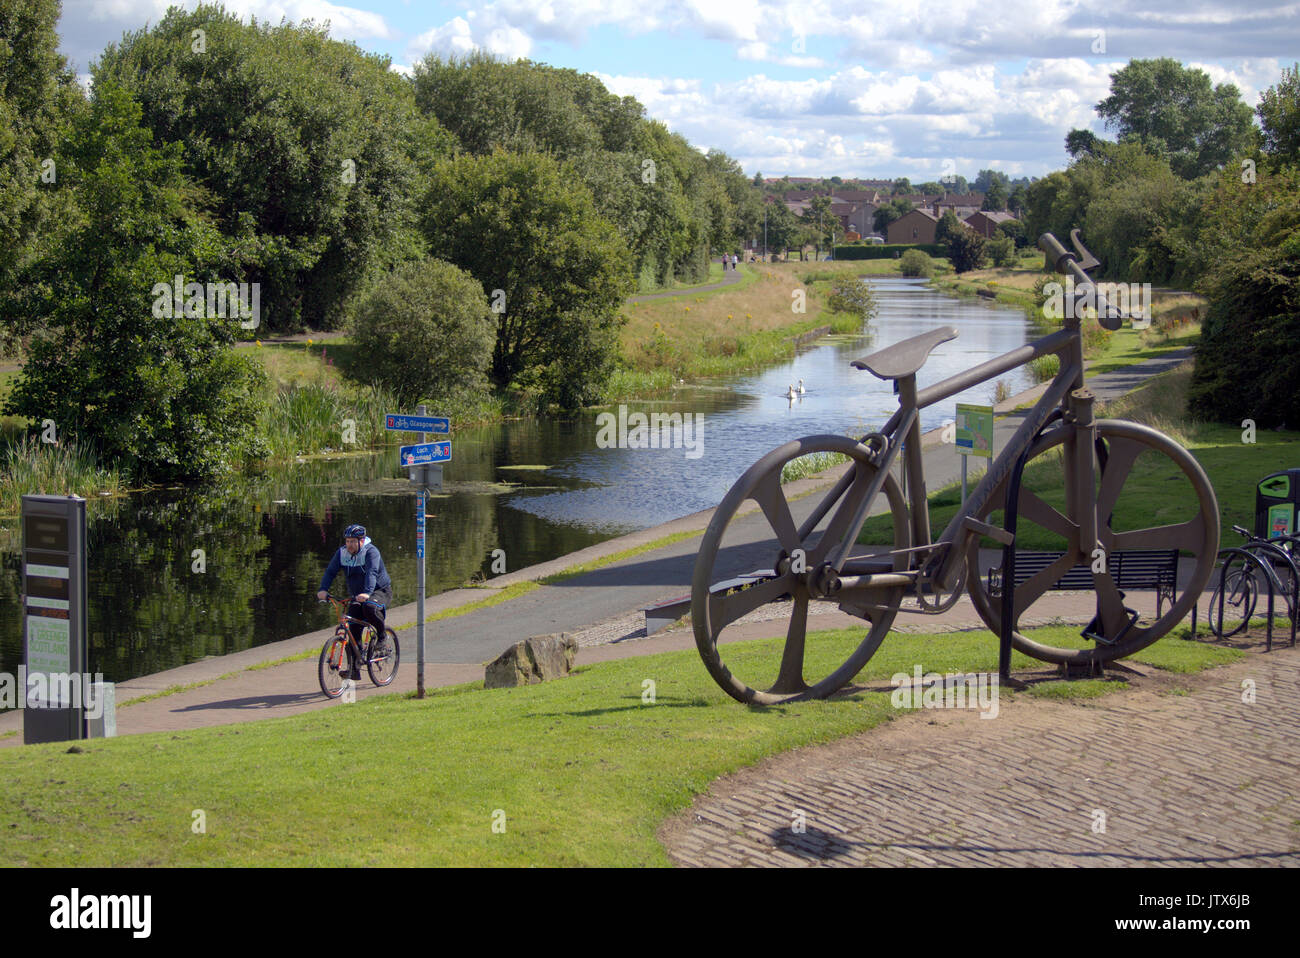 locals walking NCN 7 pass the Bankies bike sculpture at Clydebank  Summer weather and locals enjoy the summer  on the Forth and Clyde canal towpath - Stock Image